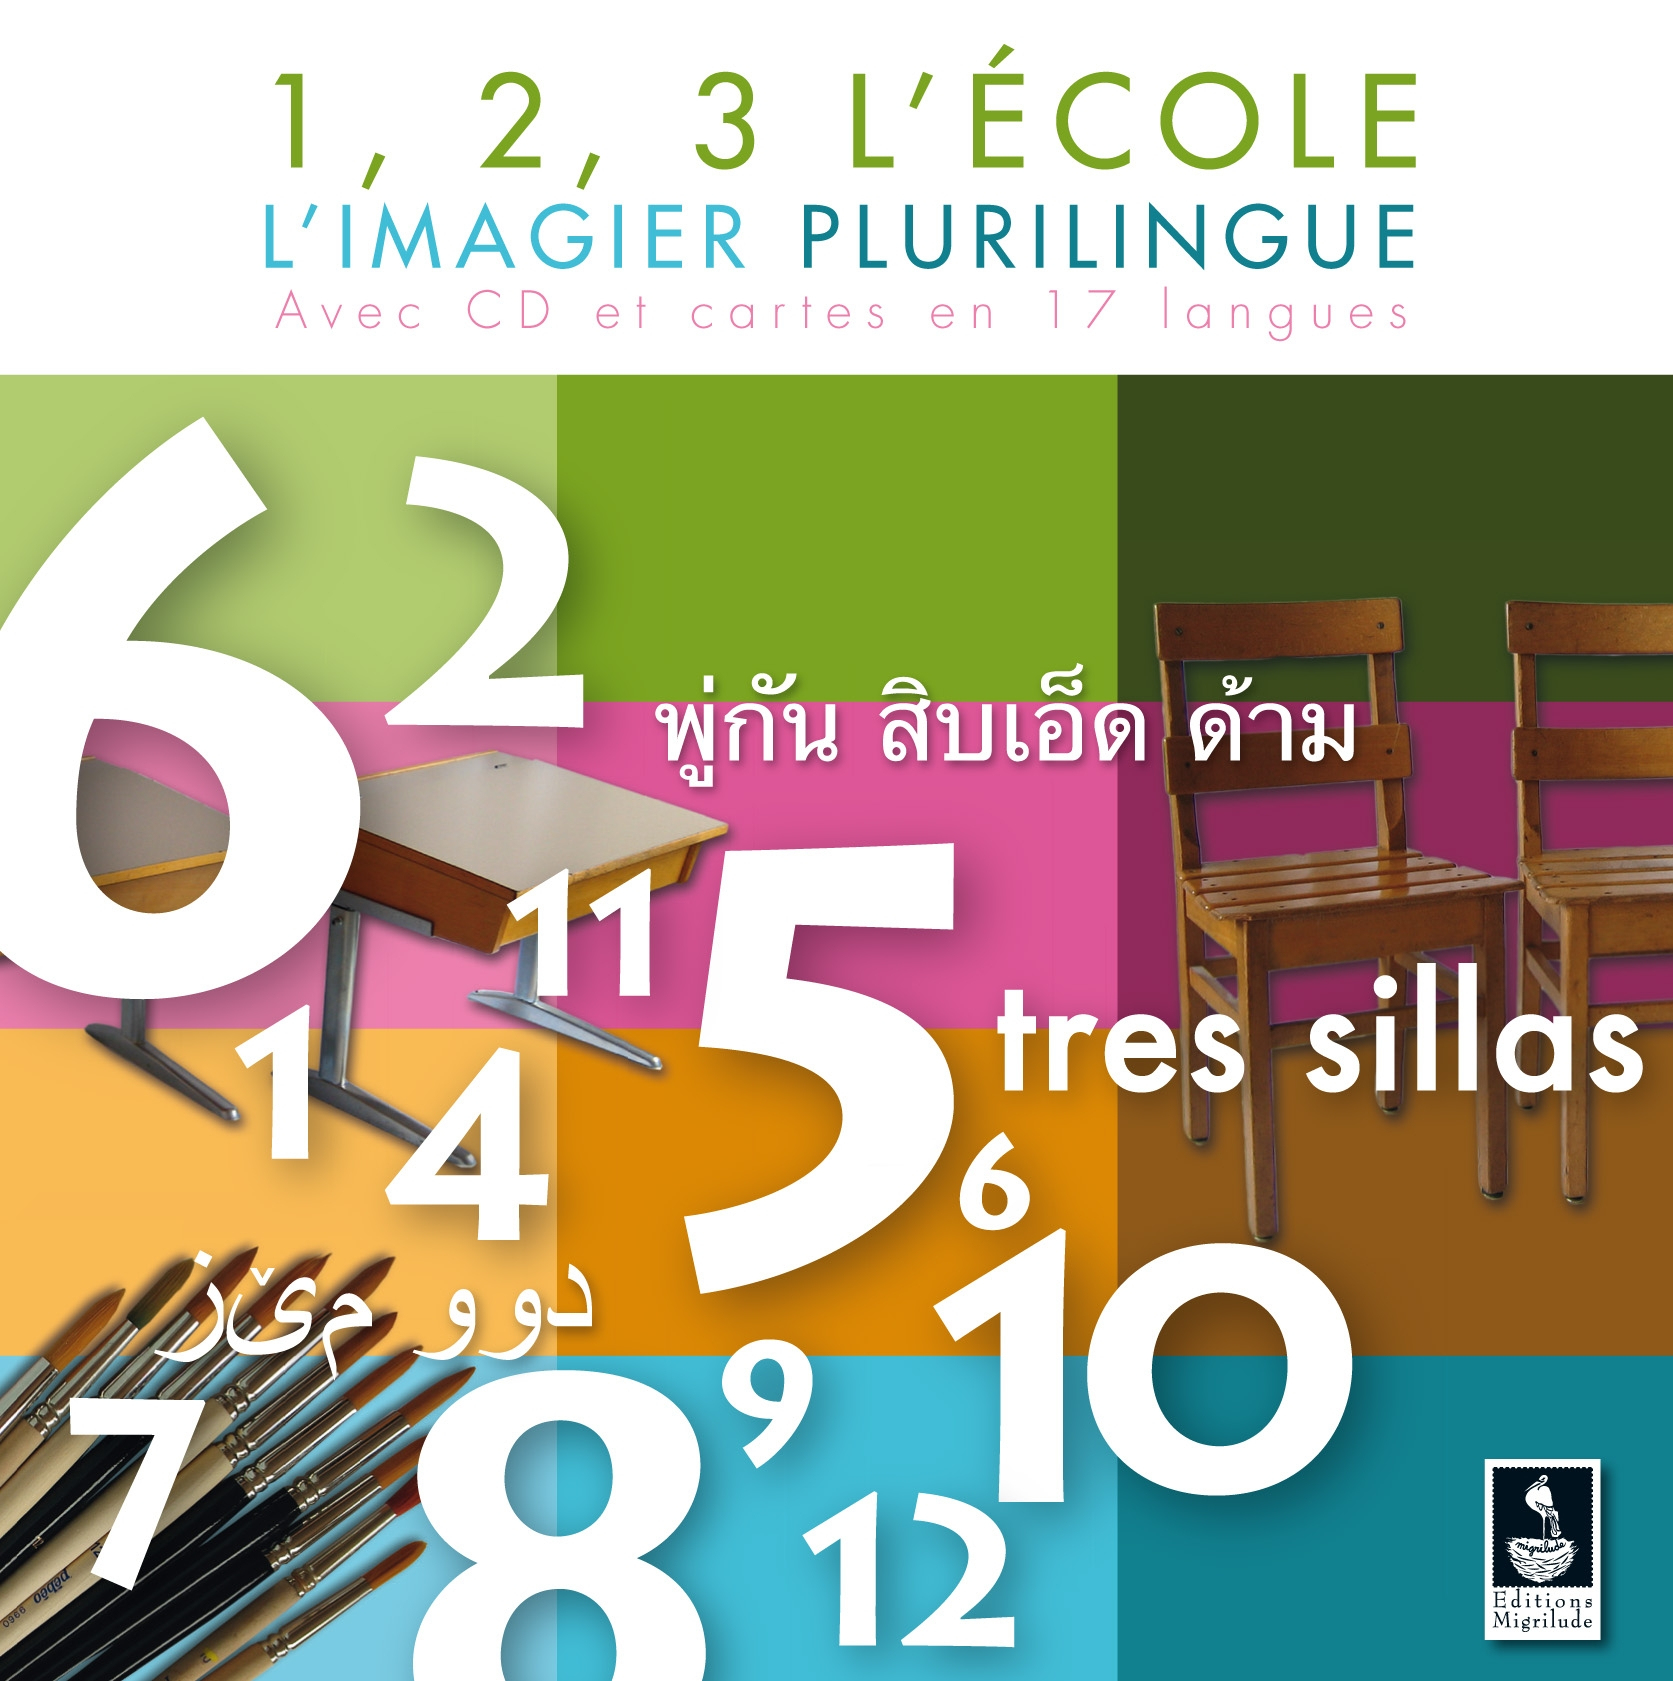 3 Classes + 17 Langues = 1 Imagier Plurilingue | Éditions dedans Imagier Ecole